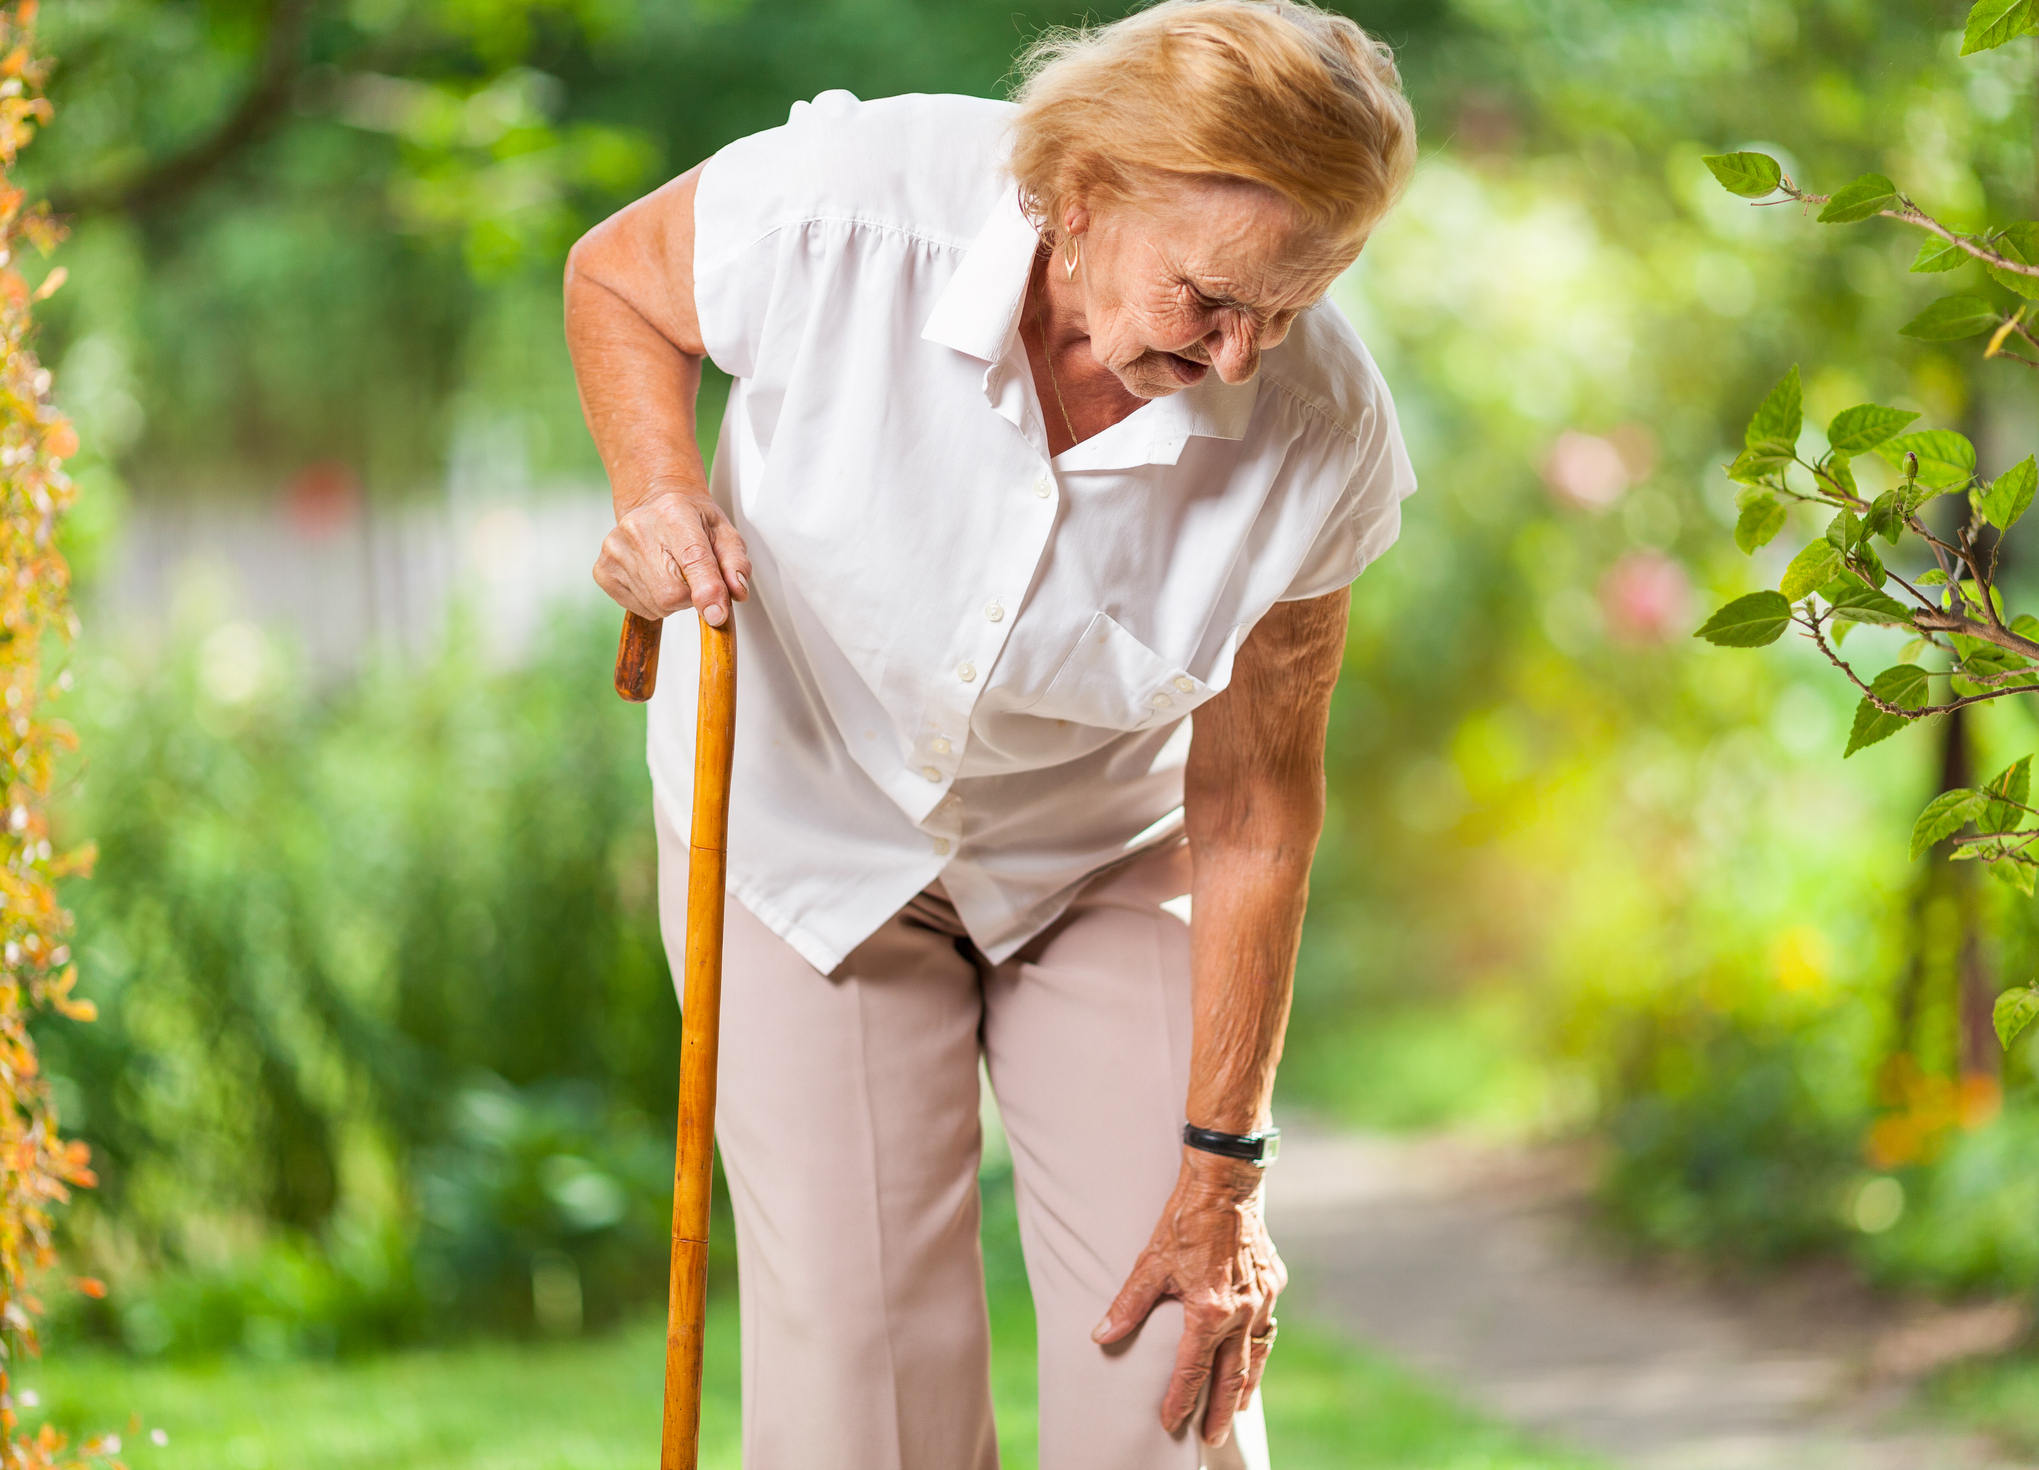 Osteoarthritis, stiff muscles and joints can increase the fall risk for seniors.